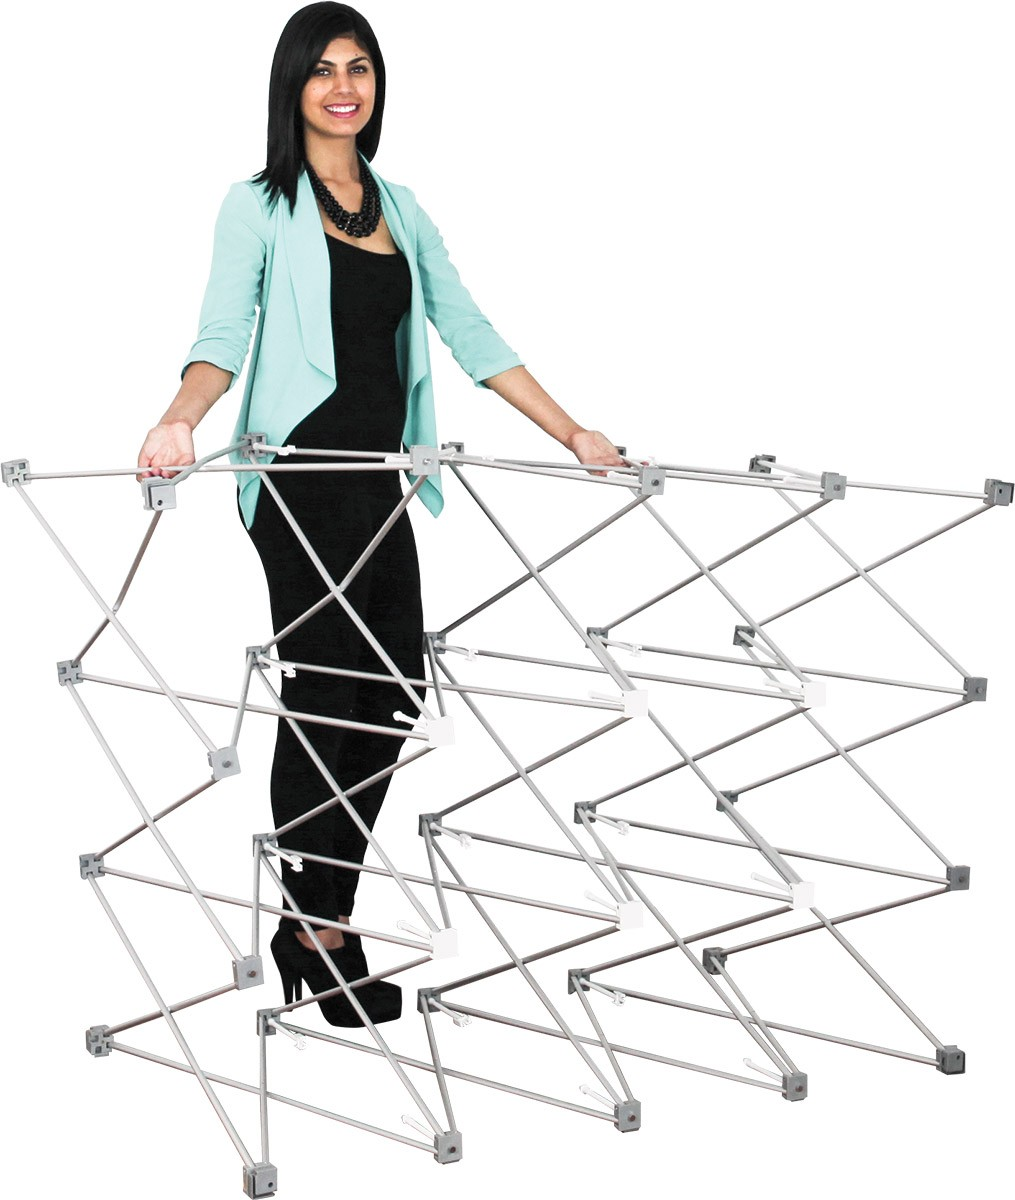 Embrace 20' Tension Fabric Display